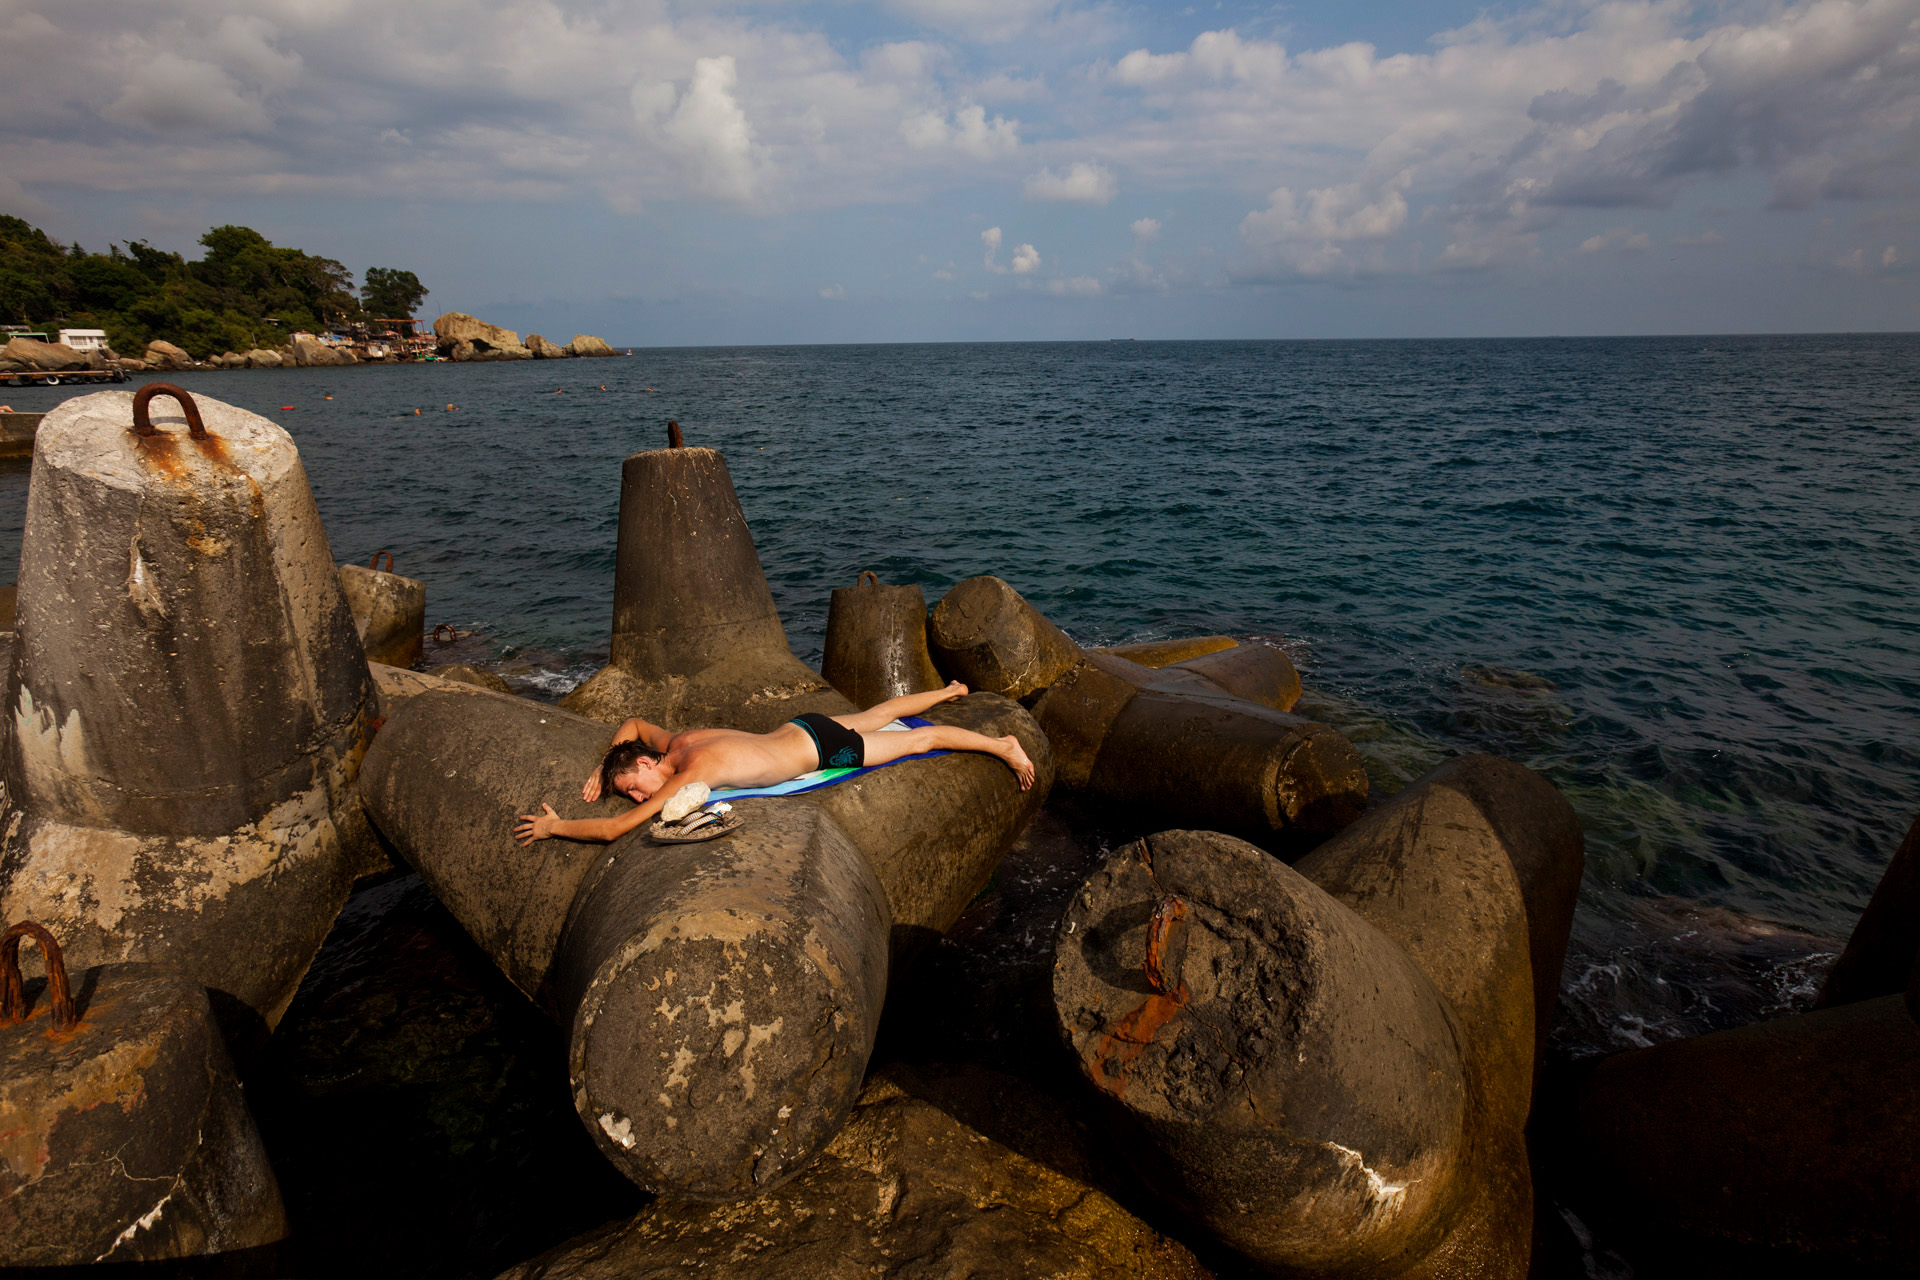 Just a short drive from Yalta lies Alupka, a popular resort town. Tourists from the former Soviet countries do not seem to mind the large concrete and steel breakers scattered across the coastline and frequently use them as sunbathing spots away from the crowds.  Alupka, Crimea